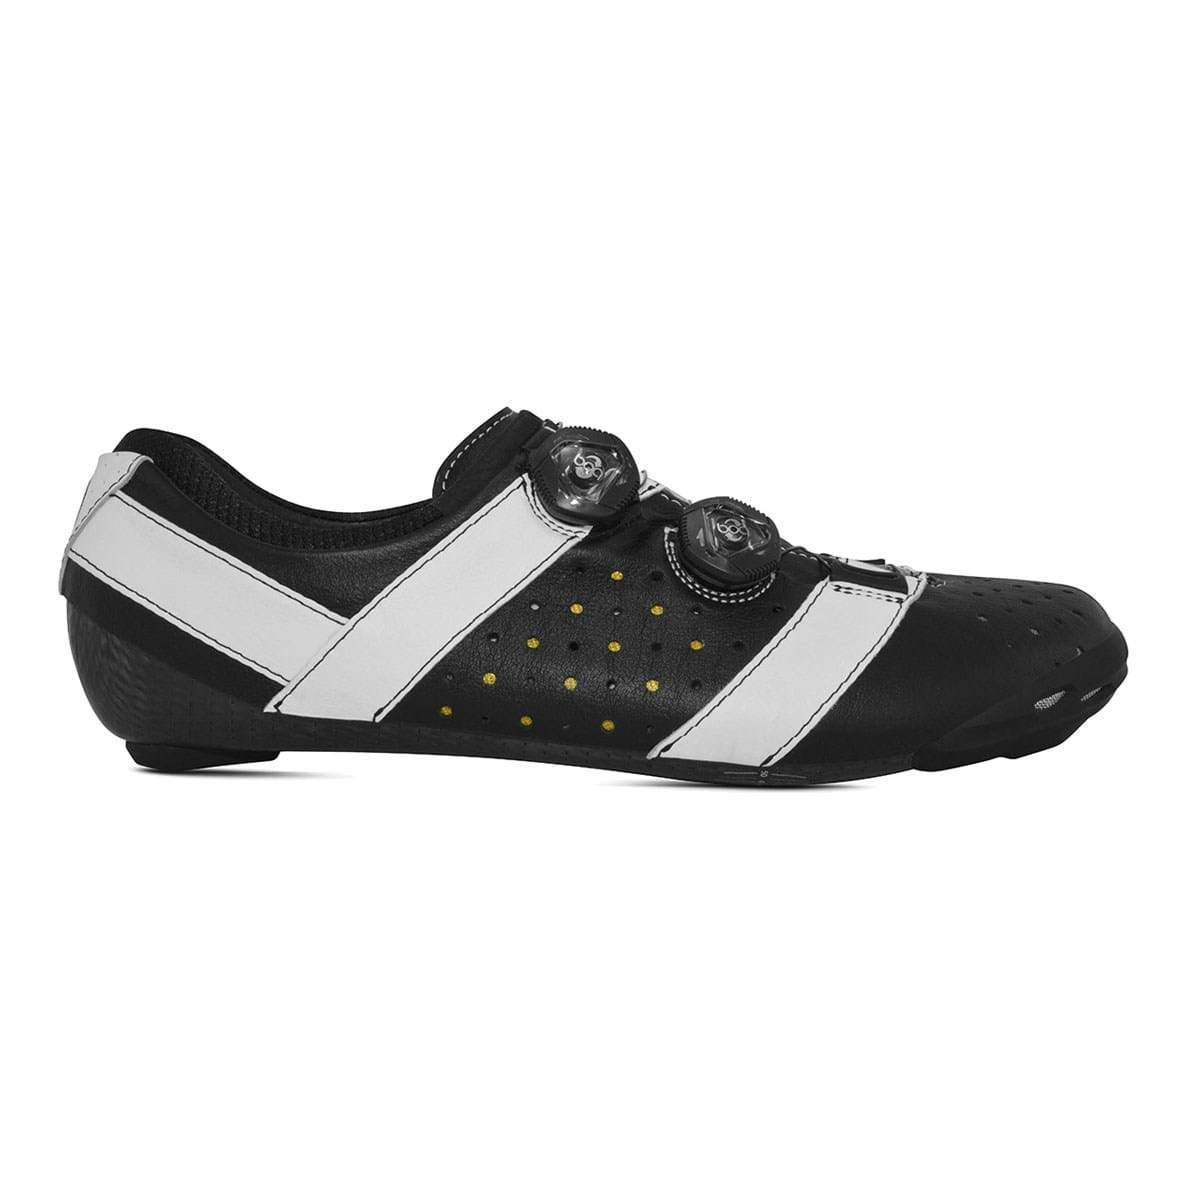 Bont Cycle Clothing > Shoes Black/White / 41 BONT VAYPOR+ ROAD CYCLING SHOE